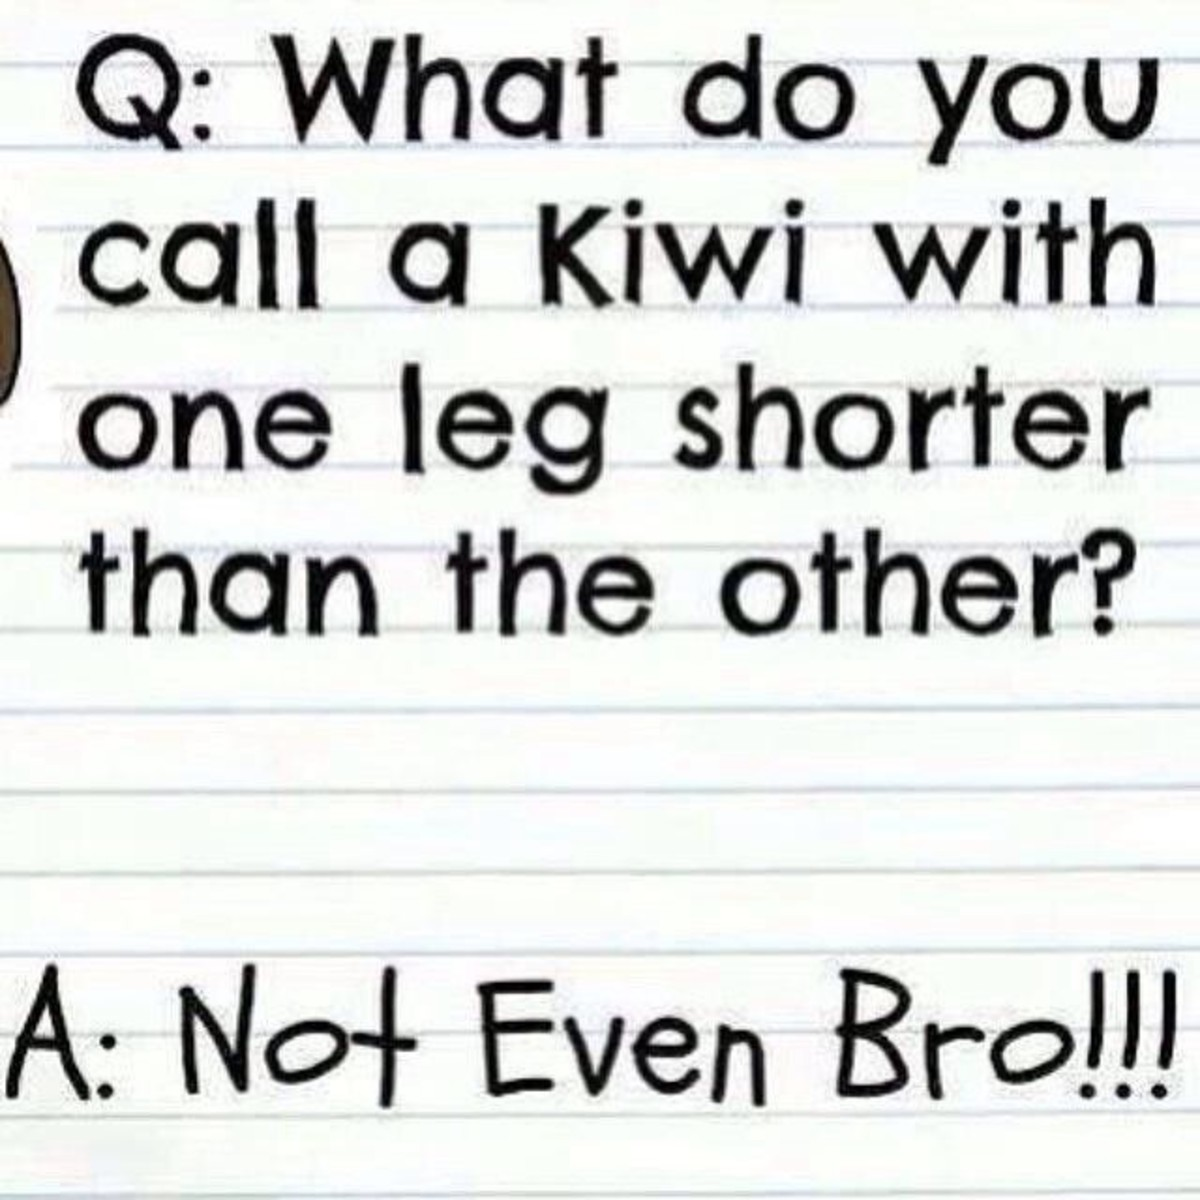 Only Australians or New Zealanders will understand this riddle.